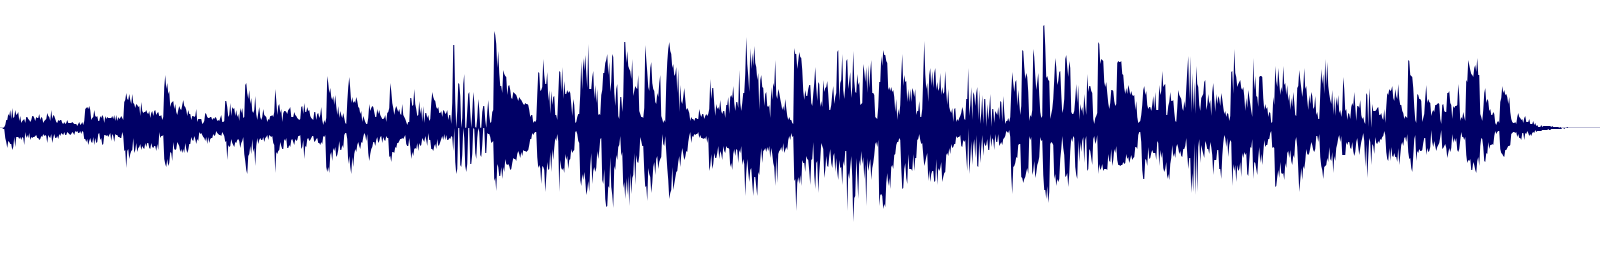 waveform of track #131091